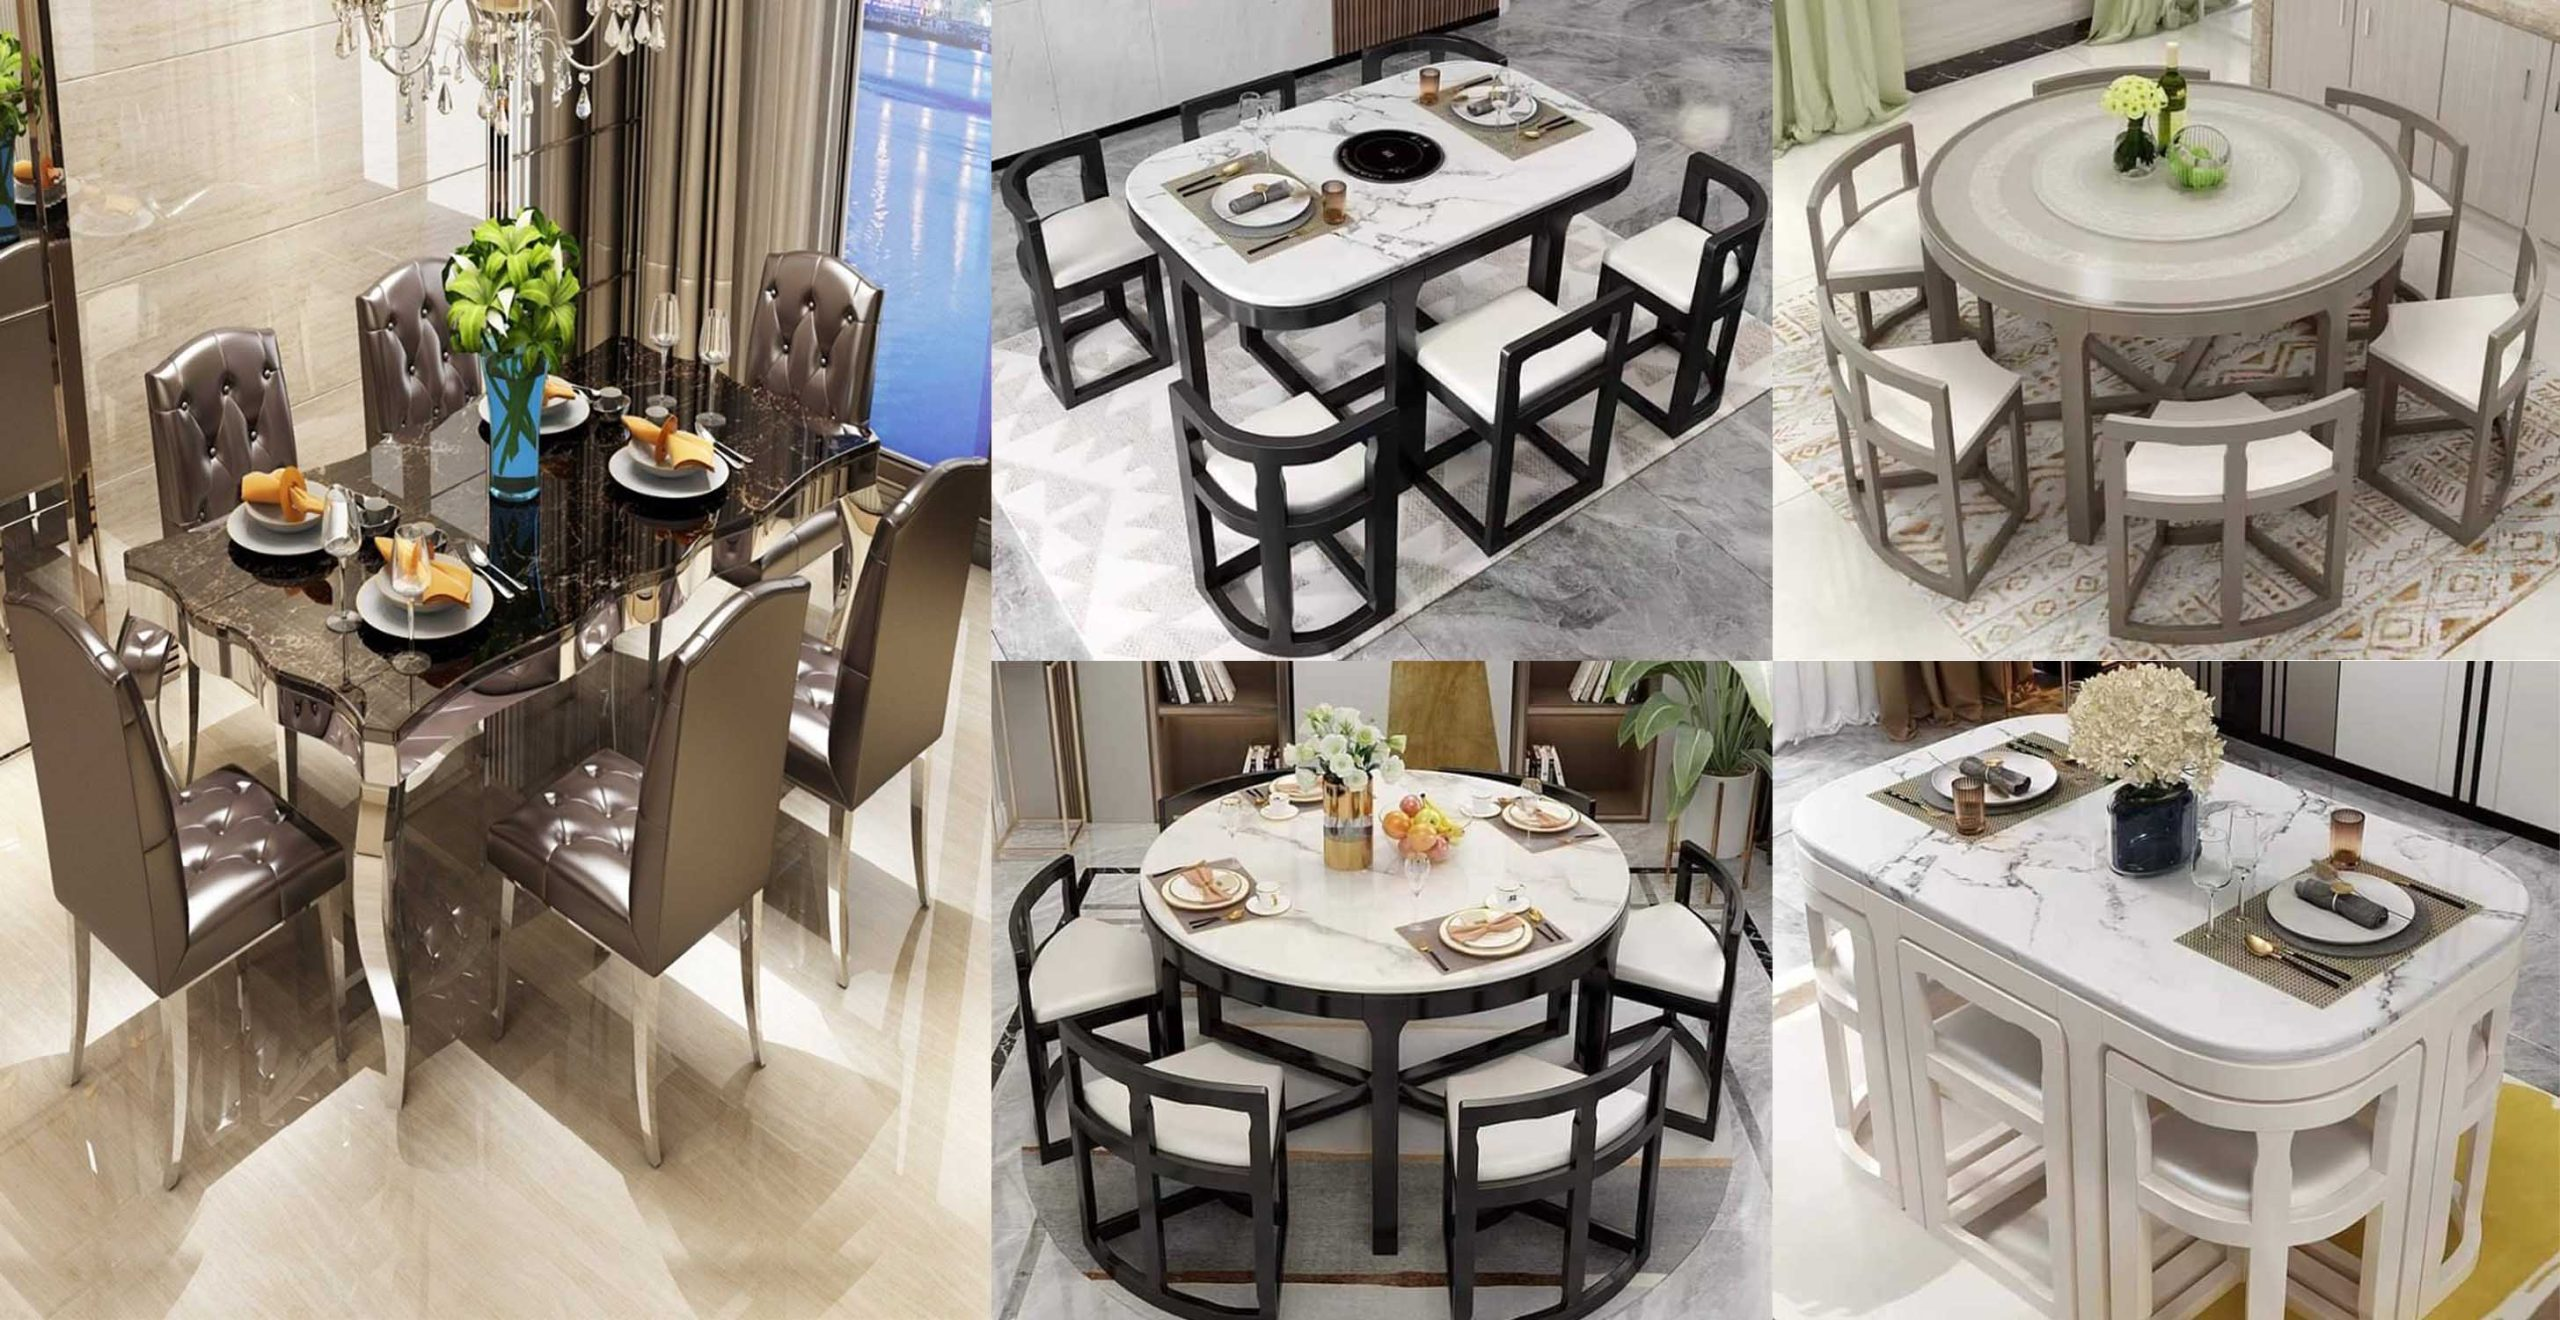 Unique Dining Tables To Make The Space, Unique Dining Room Tables